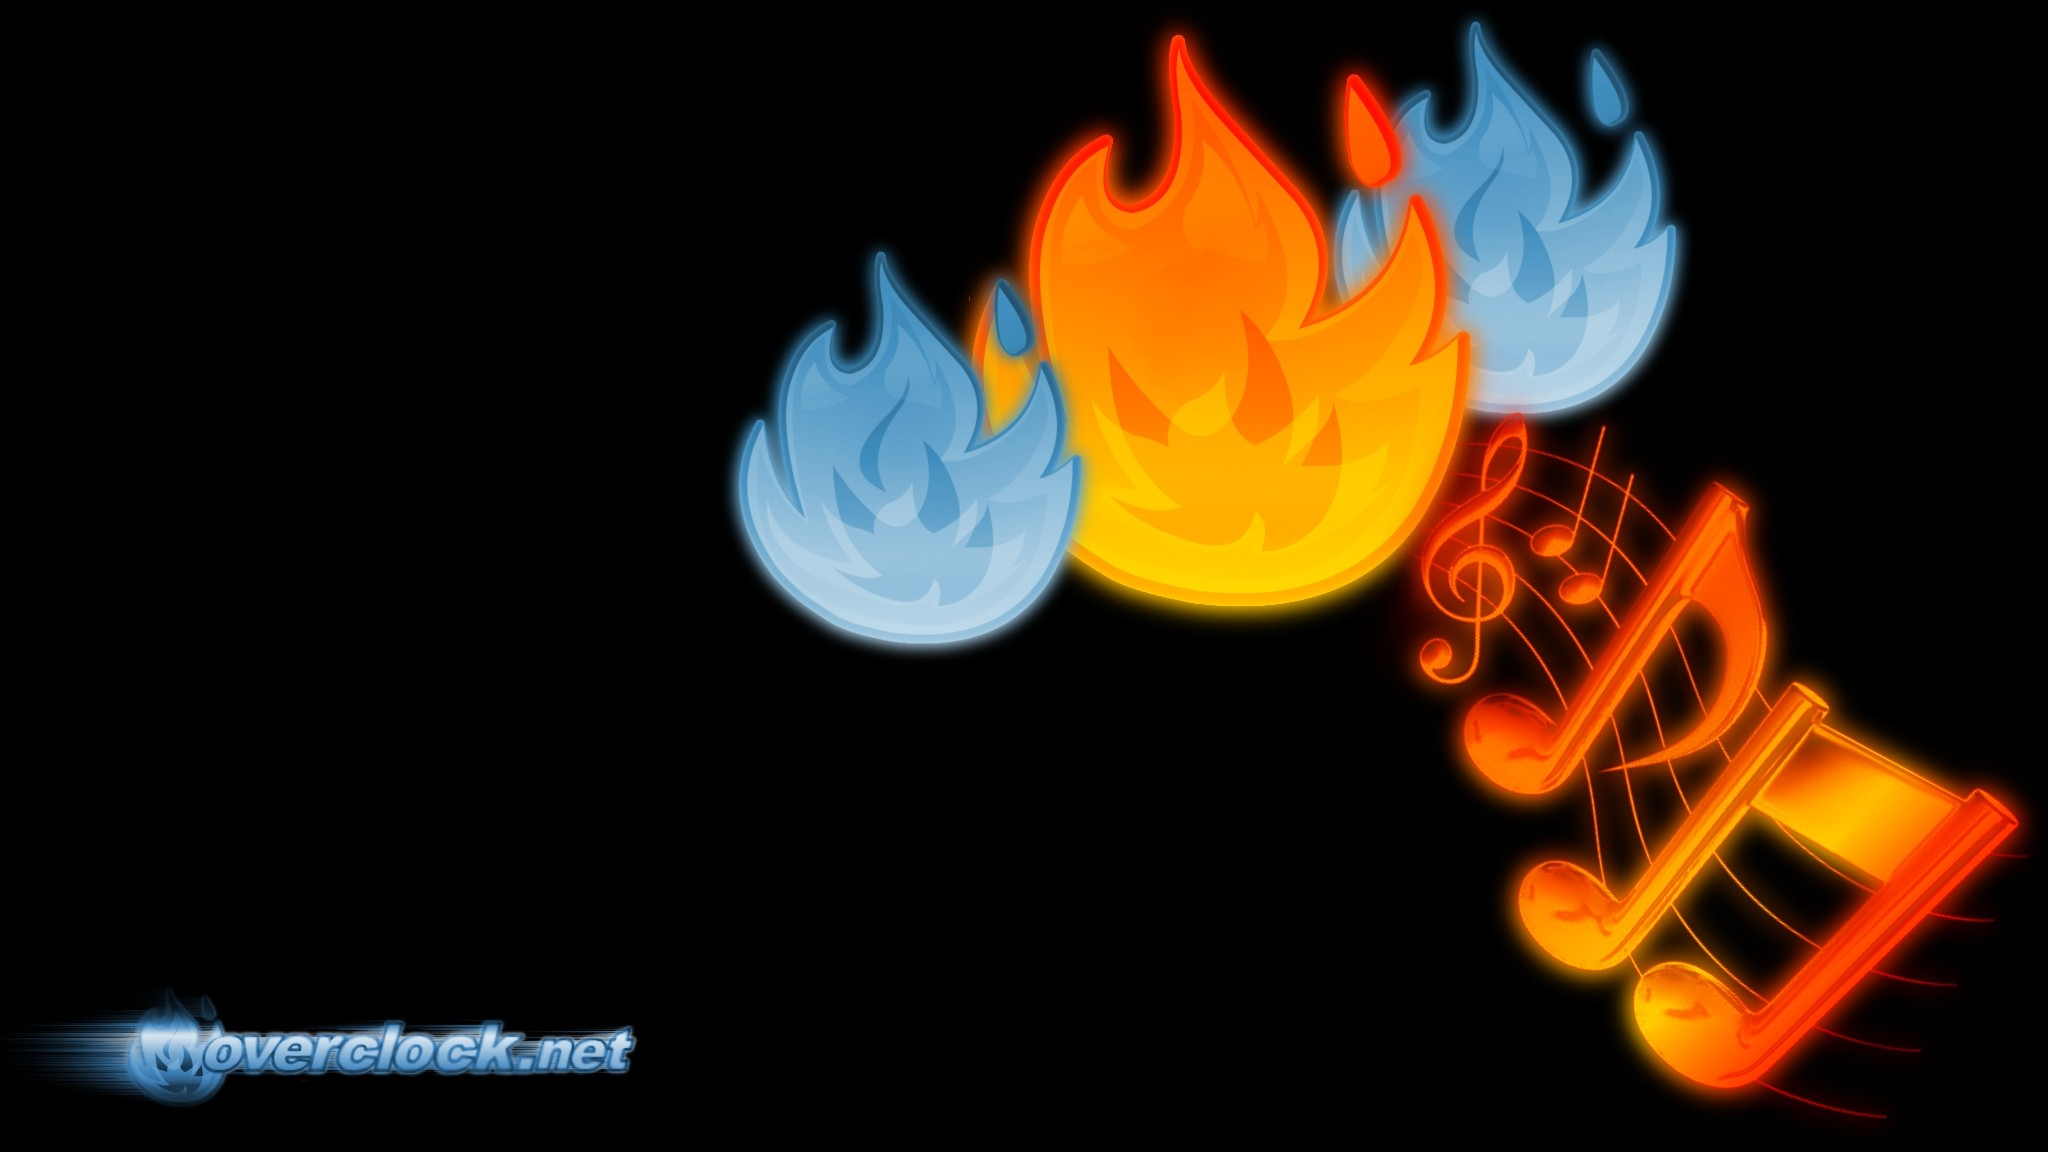 Music Notes On Flame Wallpaper 2048x1152 px